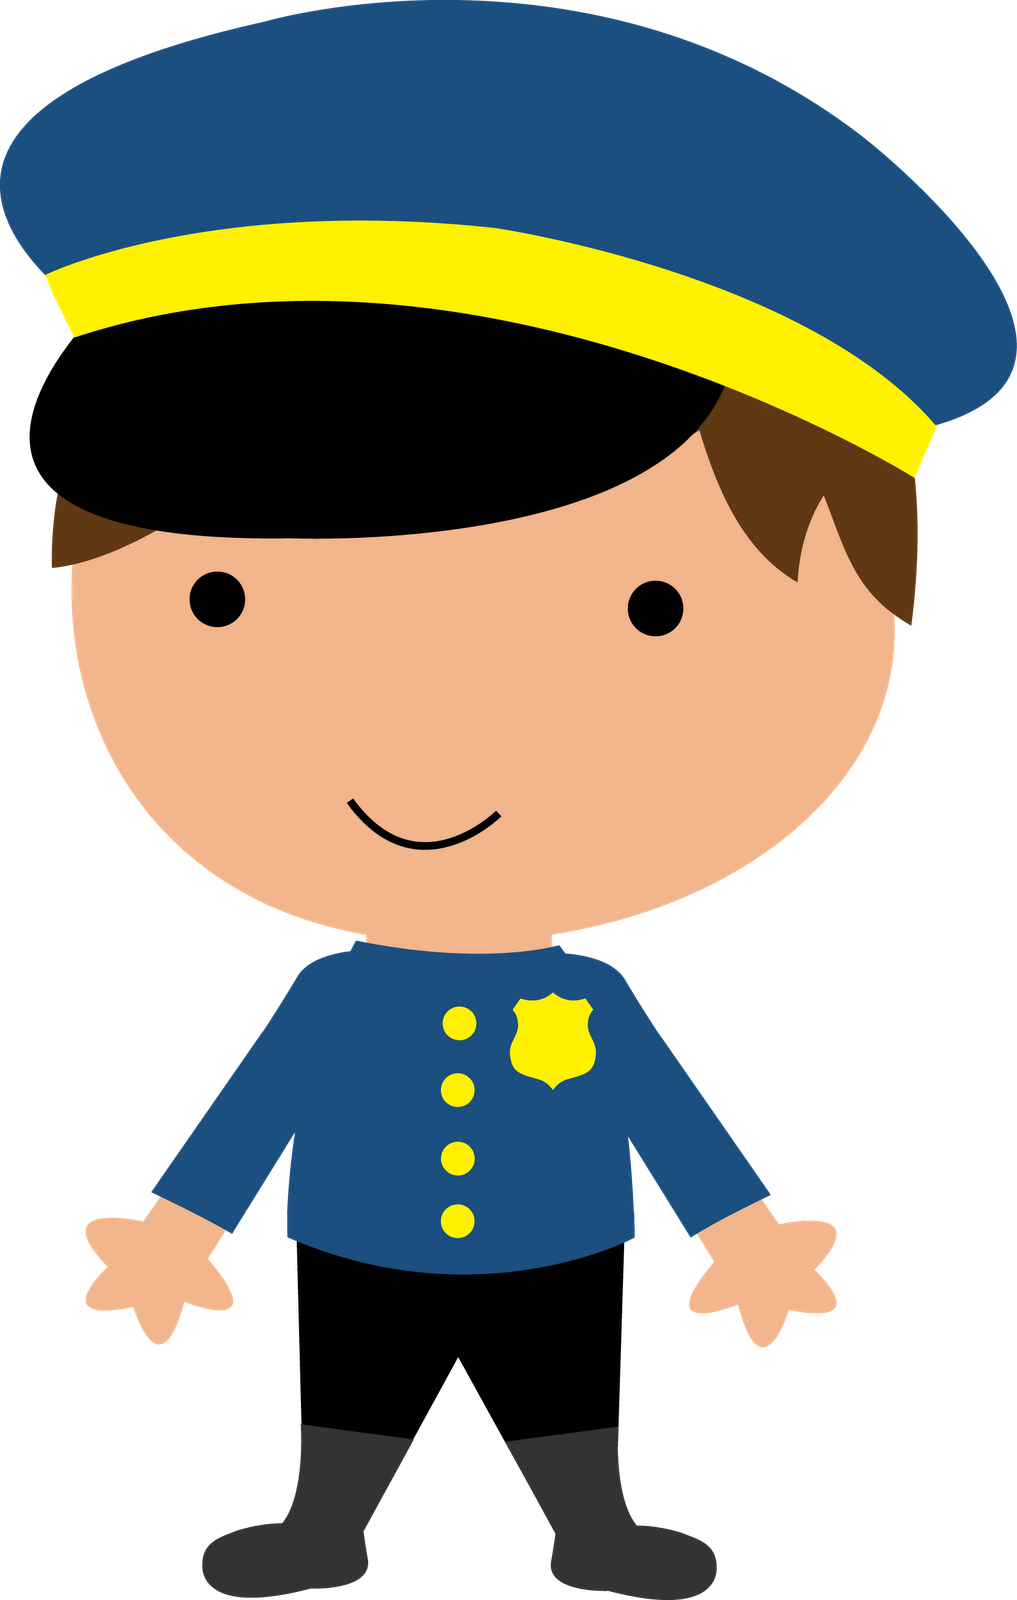 Policeman clipart police station sign. Community theme workers and